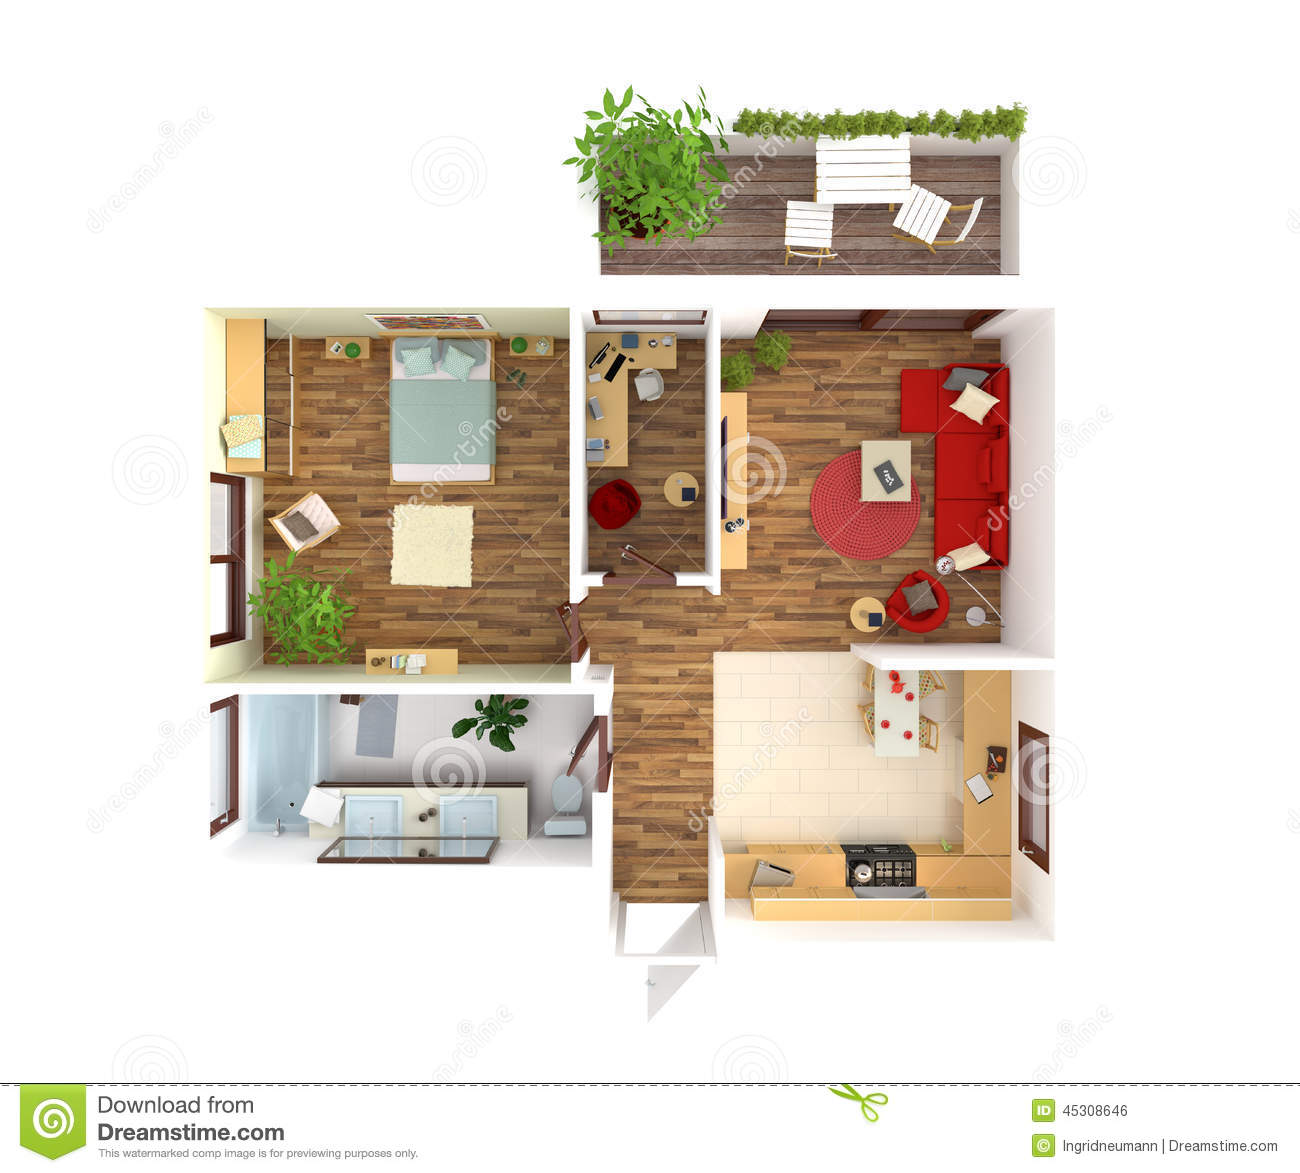 Https Www Dreamstime Com Stock Illustration House Plan Top View Interior Design Apartment Kitchen Dining Living Bedroom Hall Bathroom Image45308646